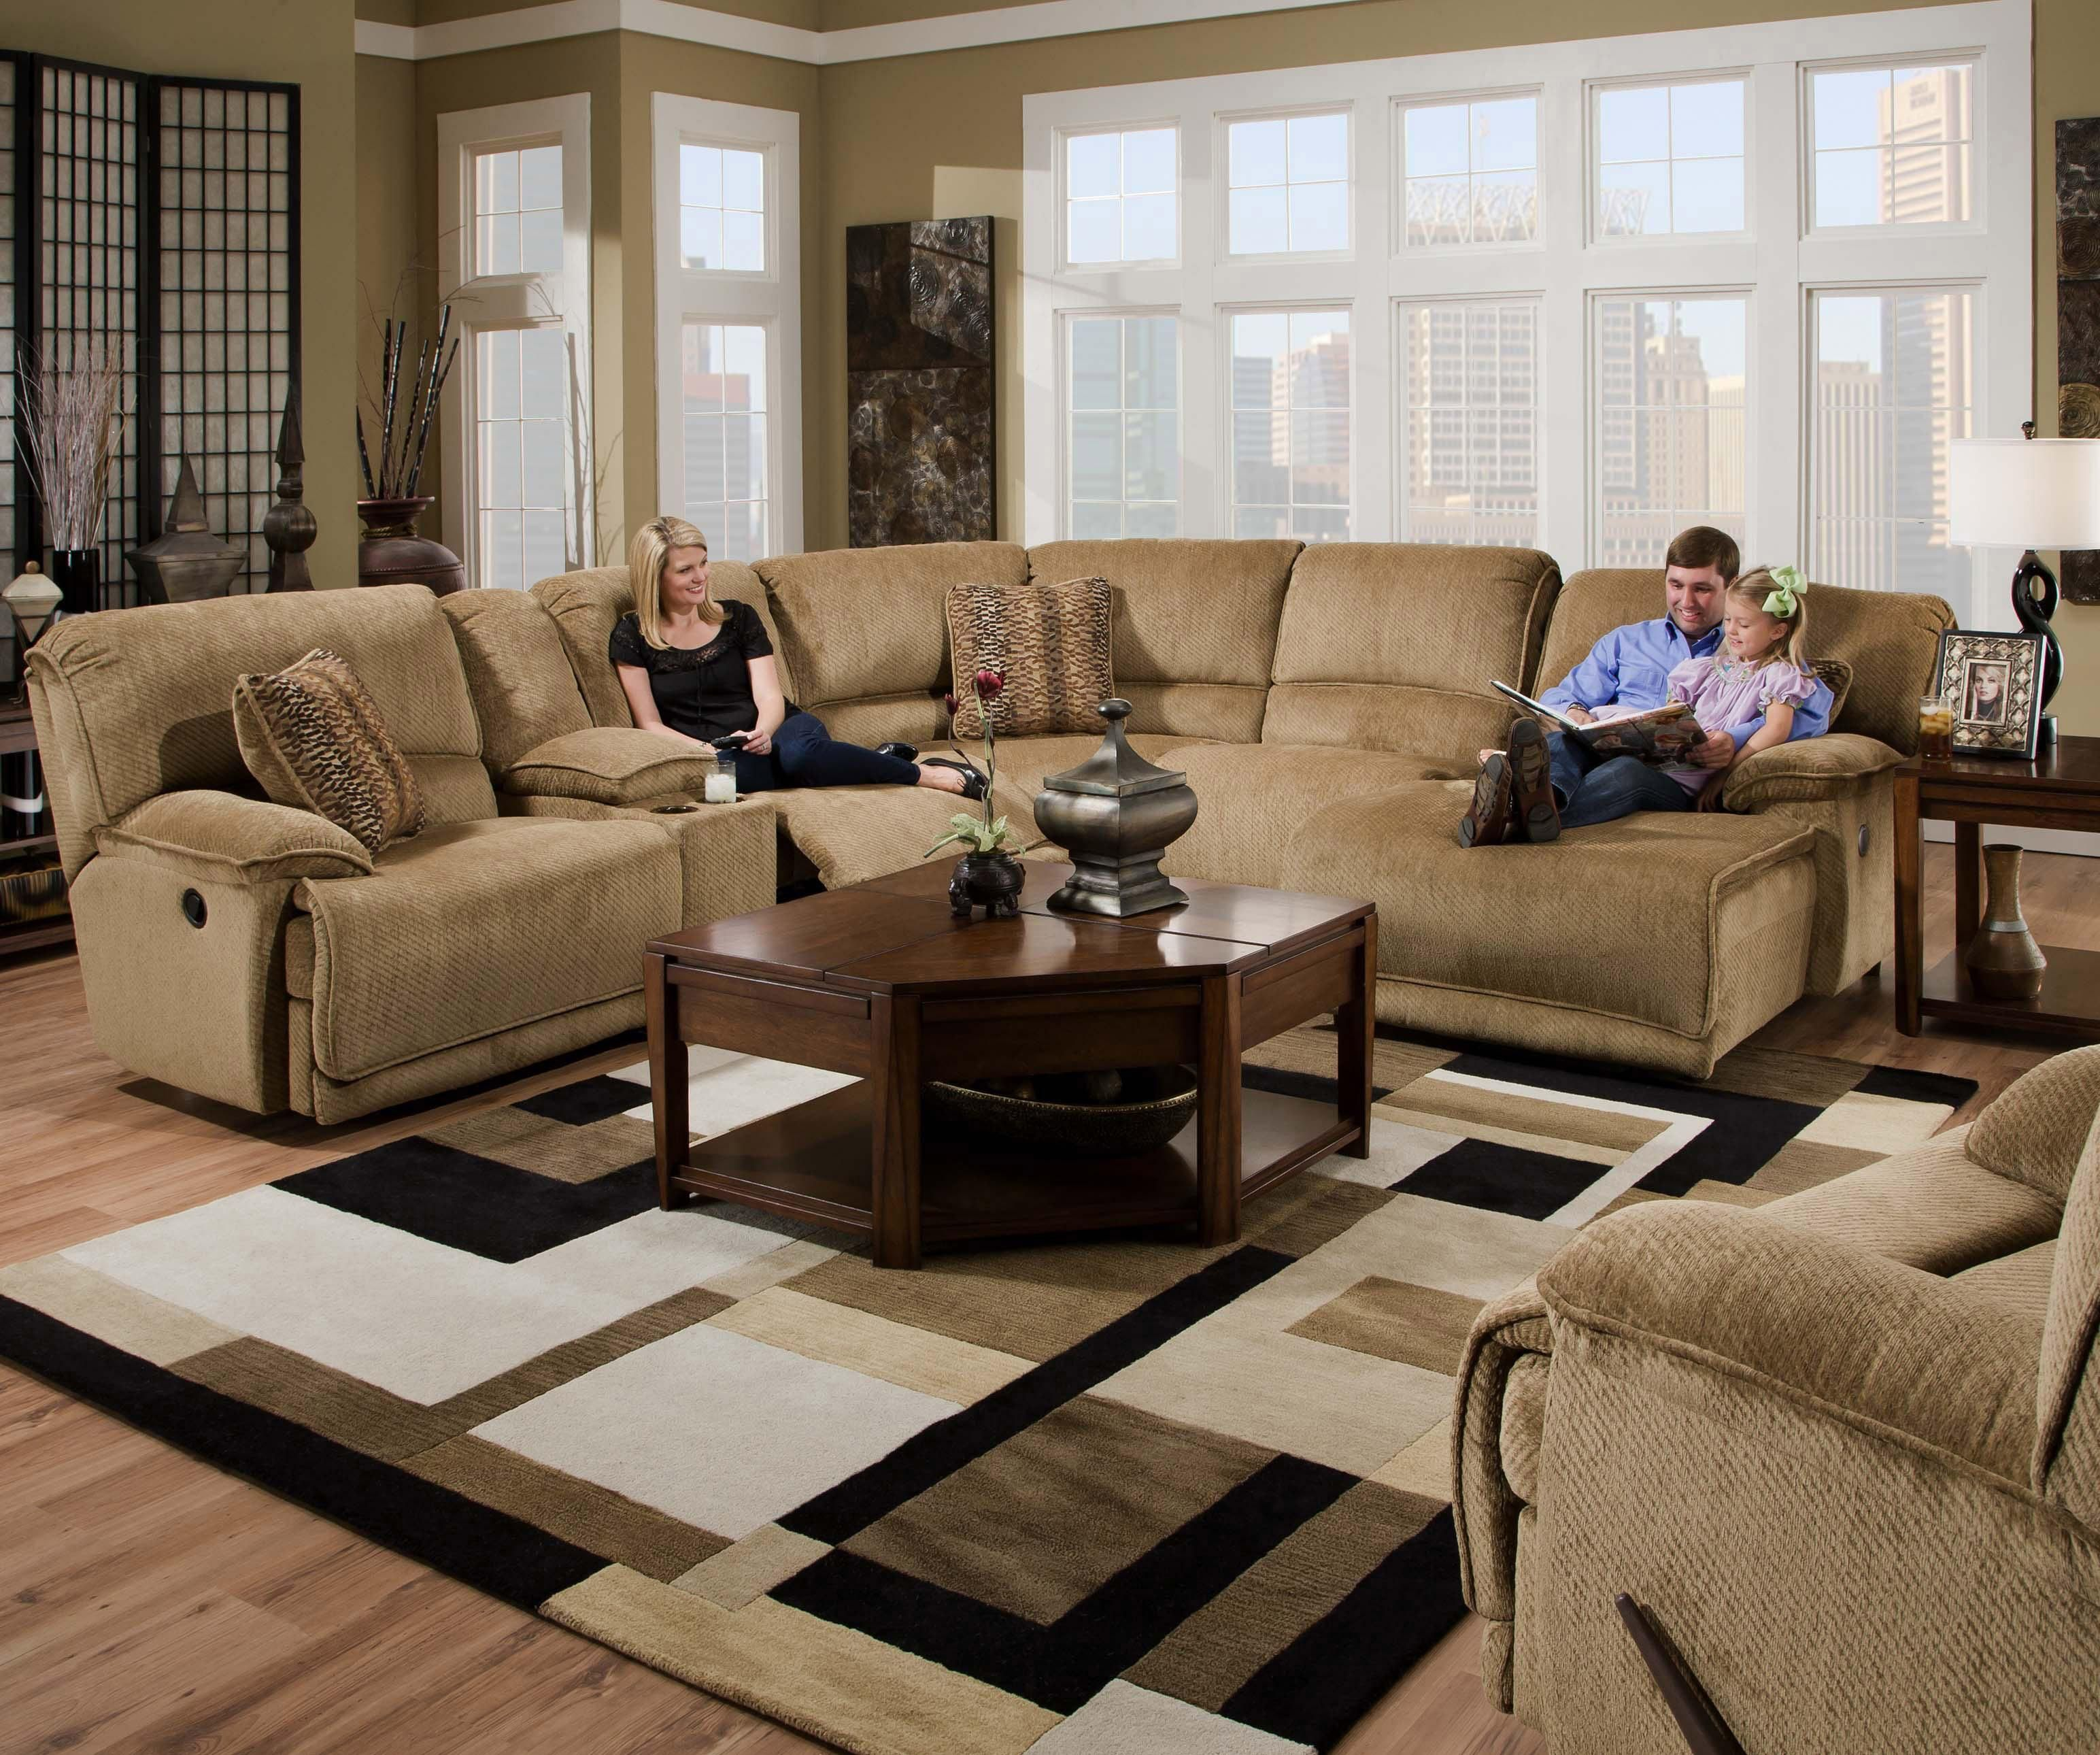 Grandover 5 Person Sectional with Right Chaise by Catnapper